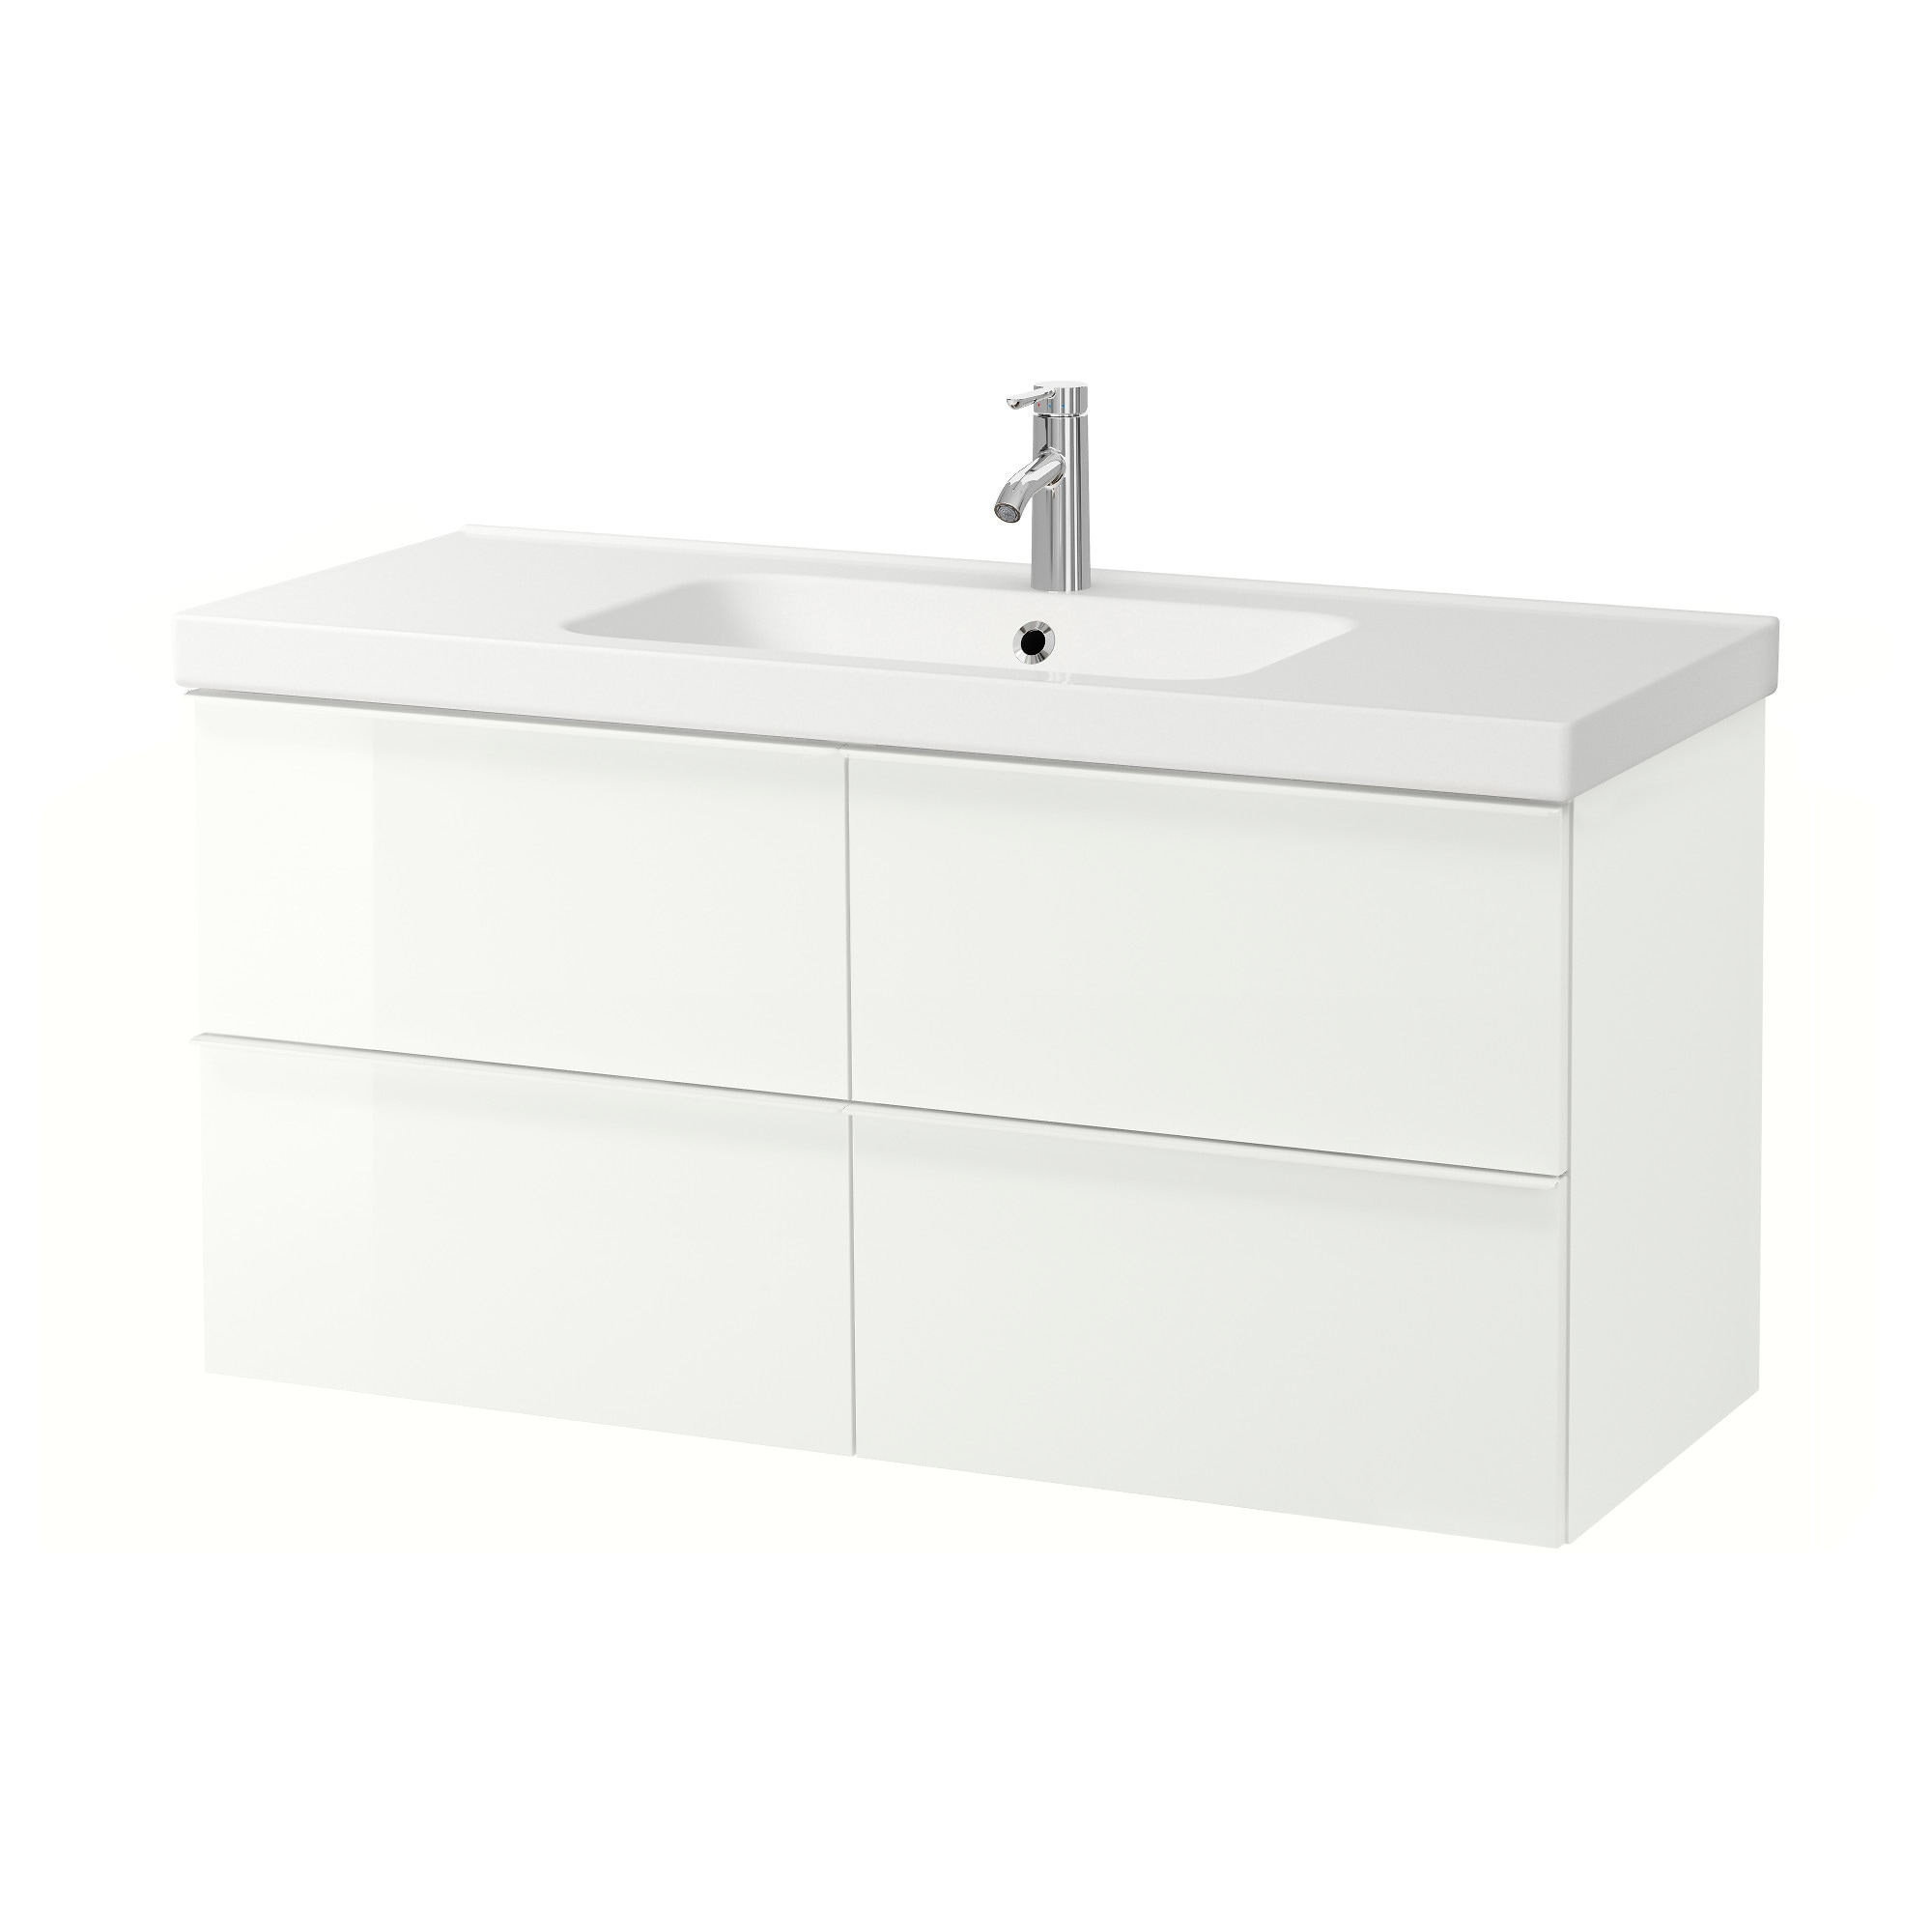 Bathroom Cabinets Black Gloss godmorgon / odensvik sink cabinet with 4 drawers - high gloss gray